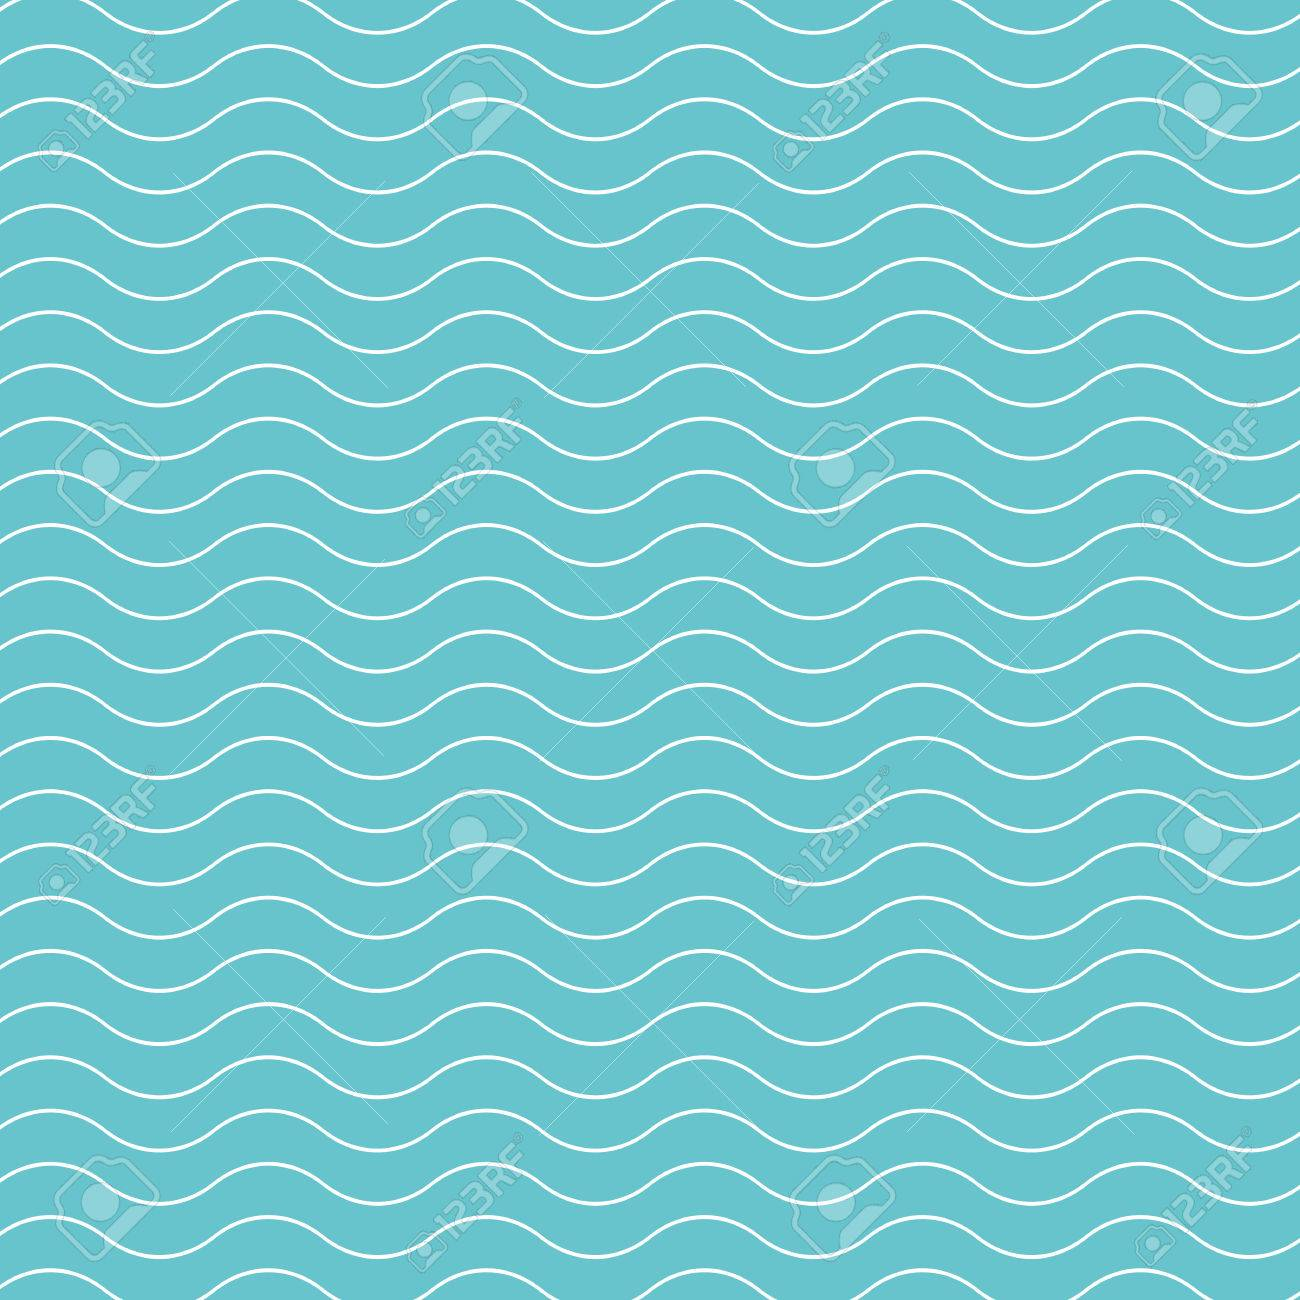 Wave pattern background  Vector background blue green